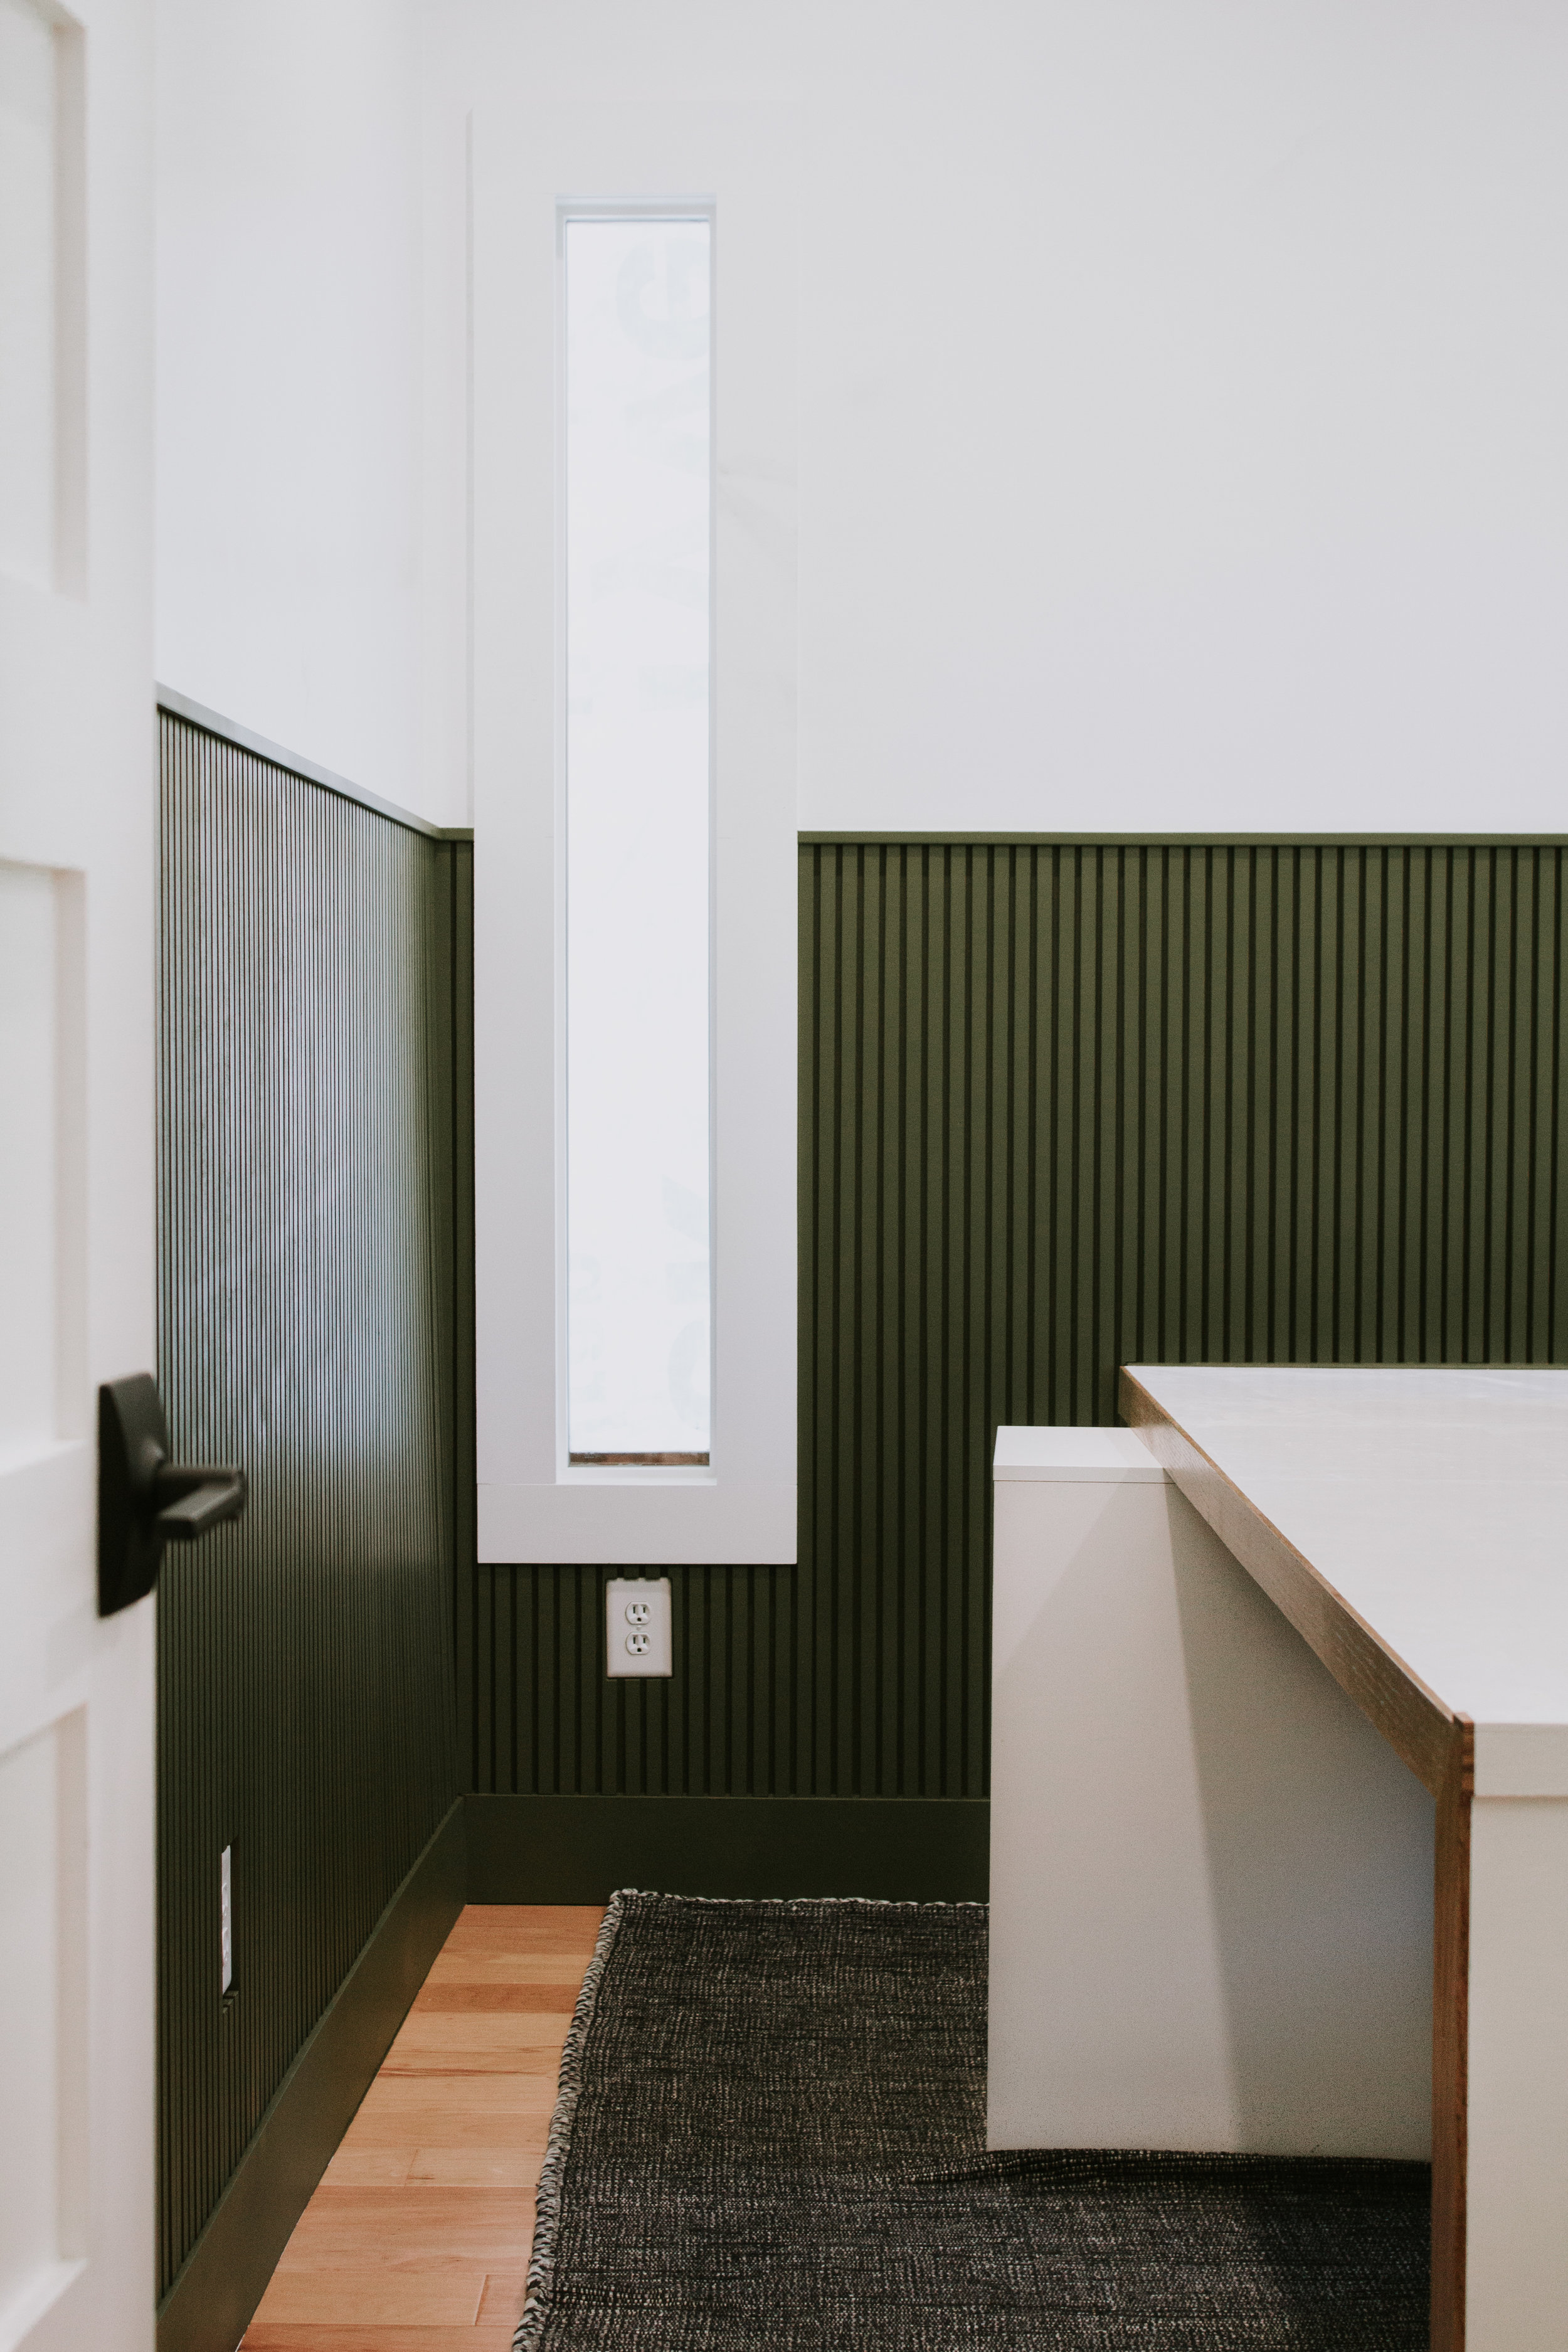 Installing modern wainscoting in our home office. Office makeover by Nadine Stay. Vertical slats painted in a rich hunter green. Full tutorial - how to install modern wainscoting in your home.